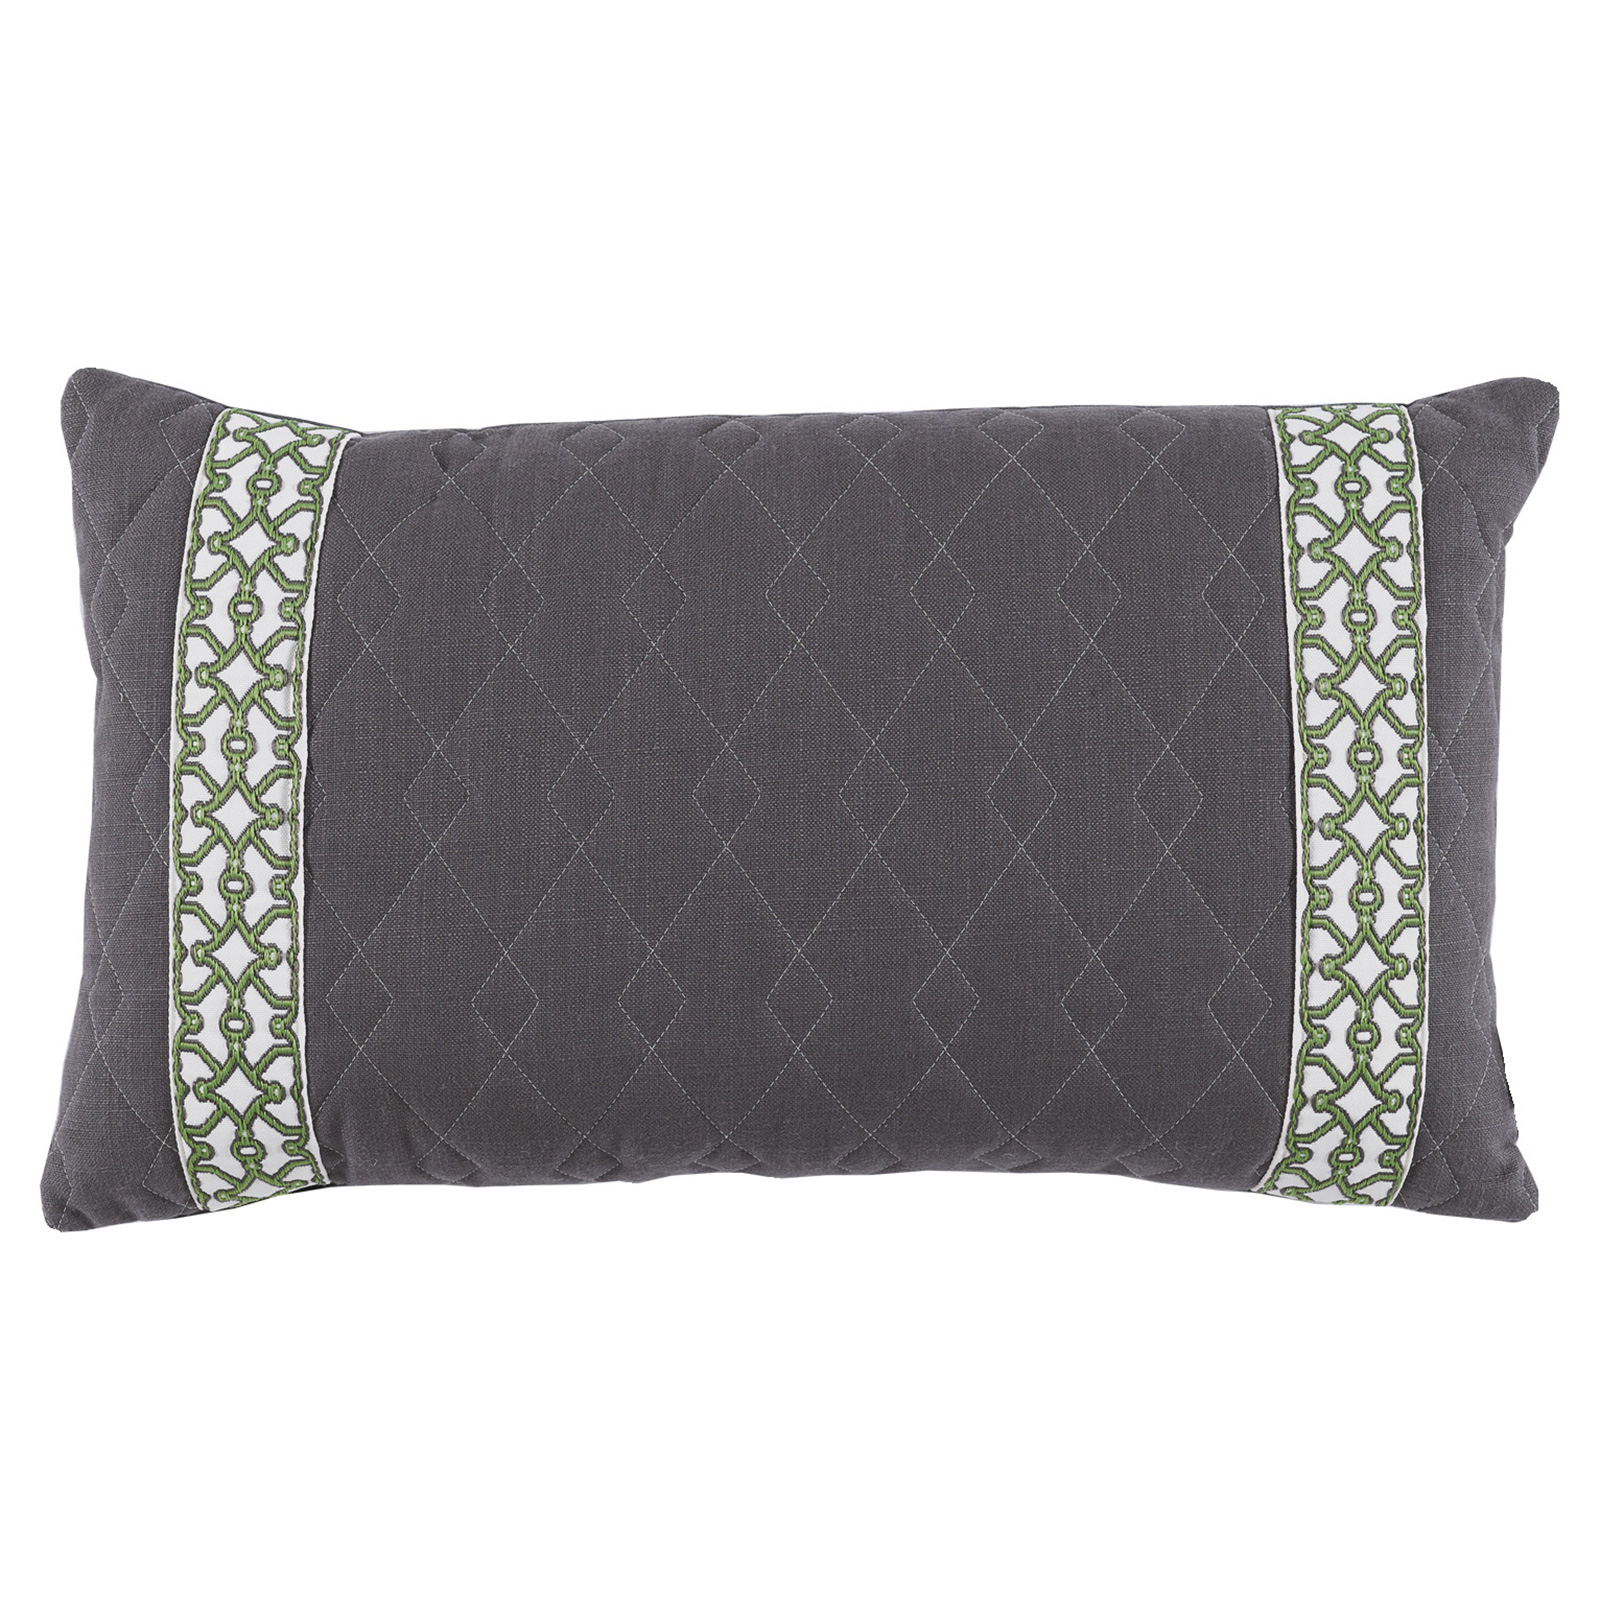 Dori Modern Classic Diamond Quilt Charcoal Trim Pillow - 13x22